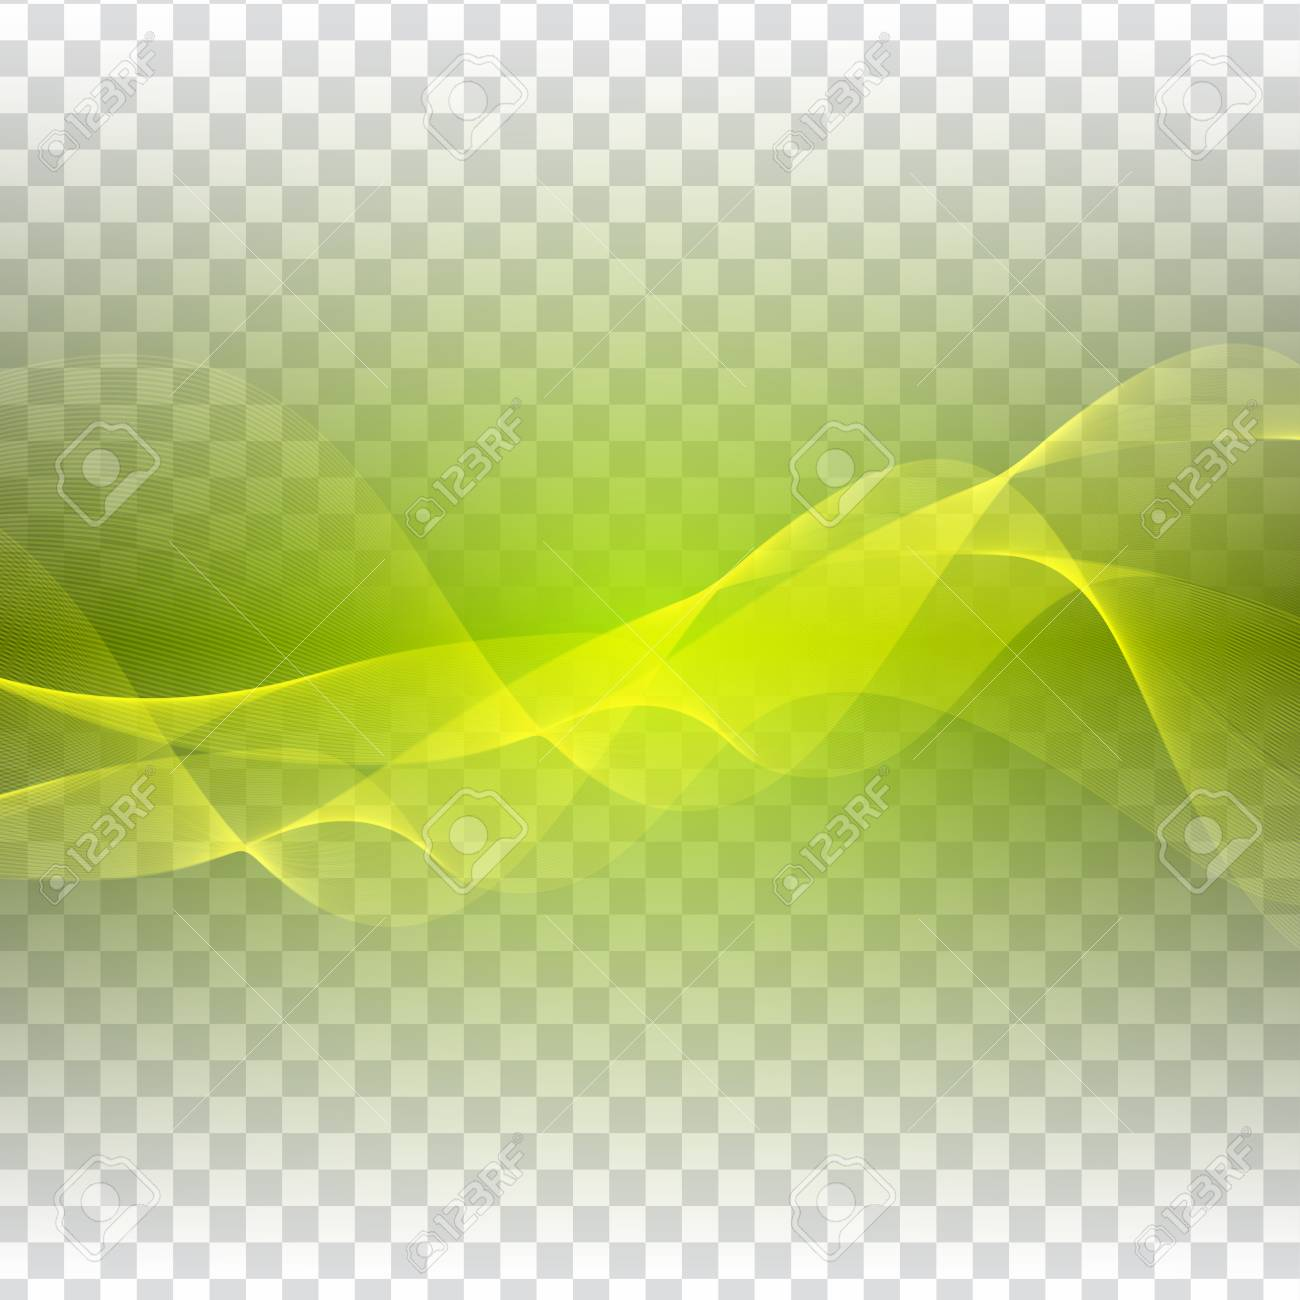 Abstract Green Waves Design On Transparent Background